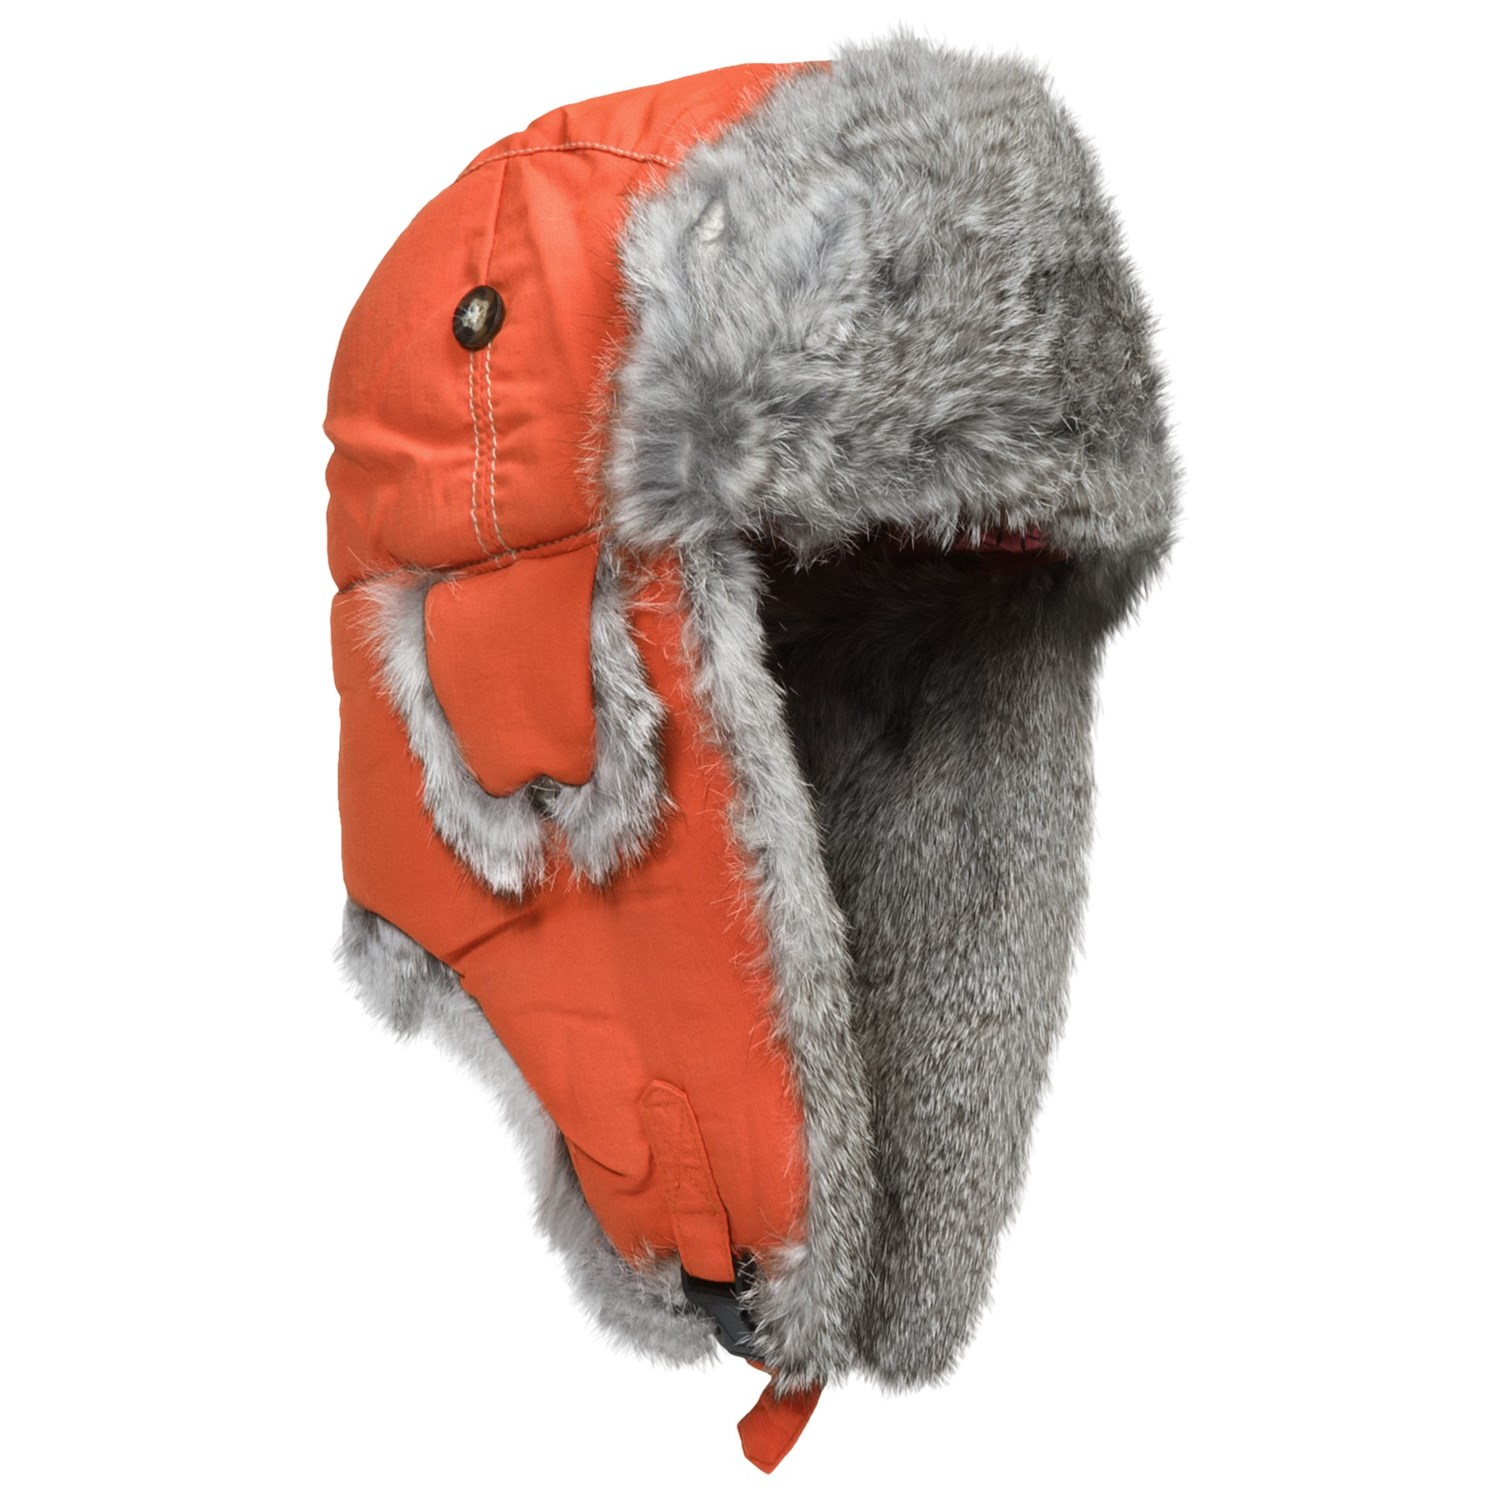 Kids' Mad Bomber Hat, Print Kids. $ View details go to shop. borizcustom AETRUE Winter Women Bomber Hats Men Fur Warm Thickened Ear Flaps Winter Hats For Women Fashion Bomber Hat Earflap Caps New (red) $ View details go to shop.